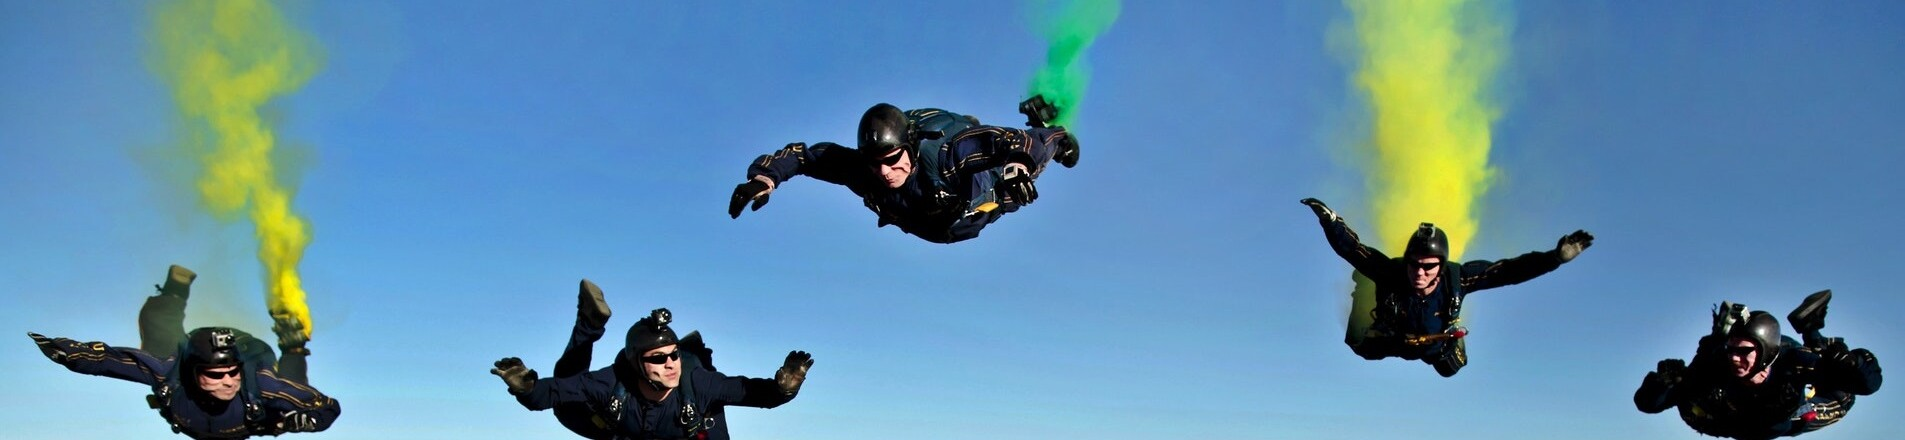 DCH's Skydiving employees raise £5000 for Shelter